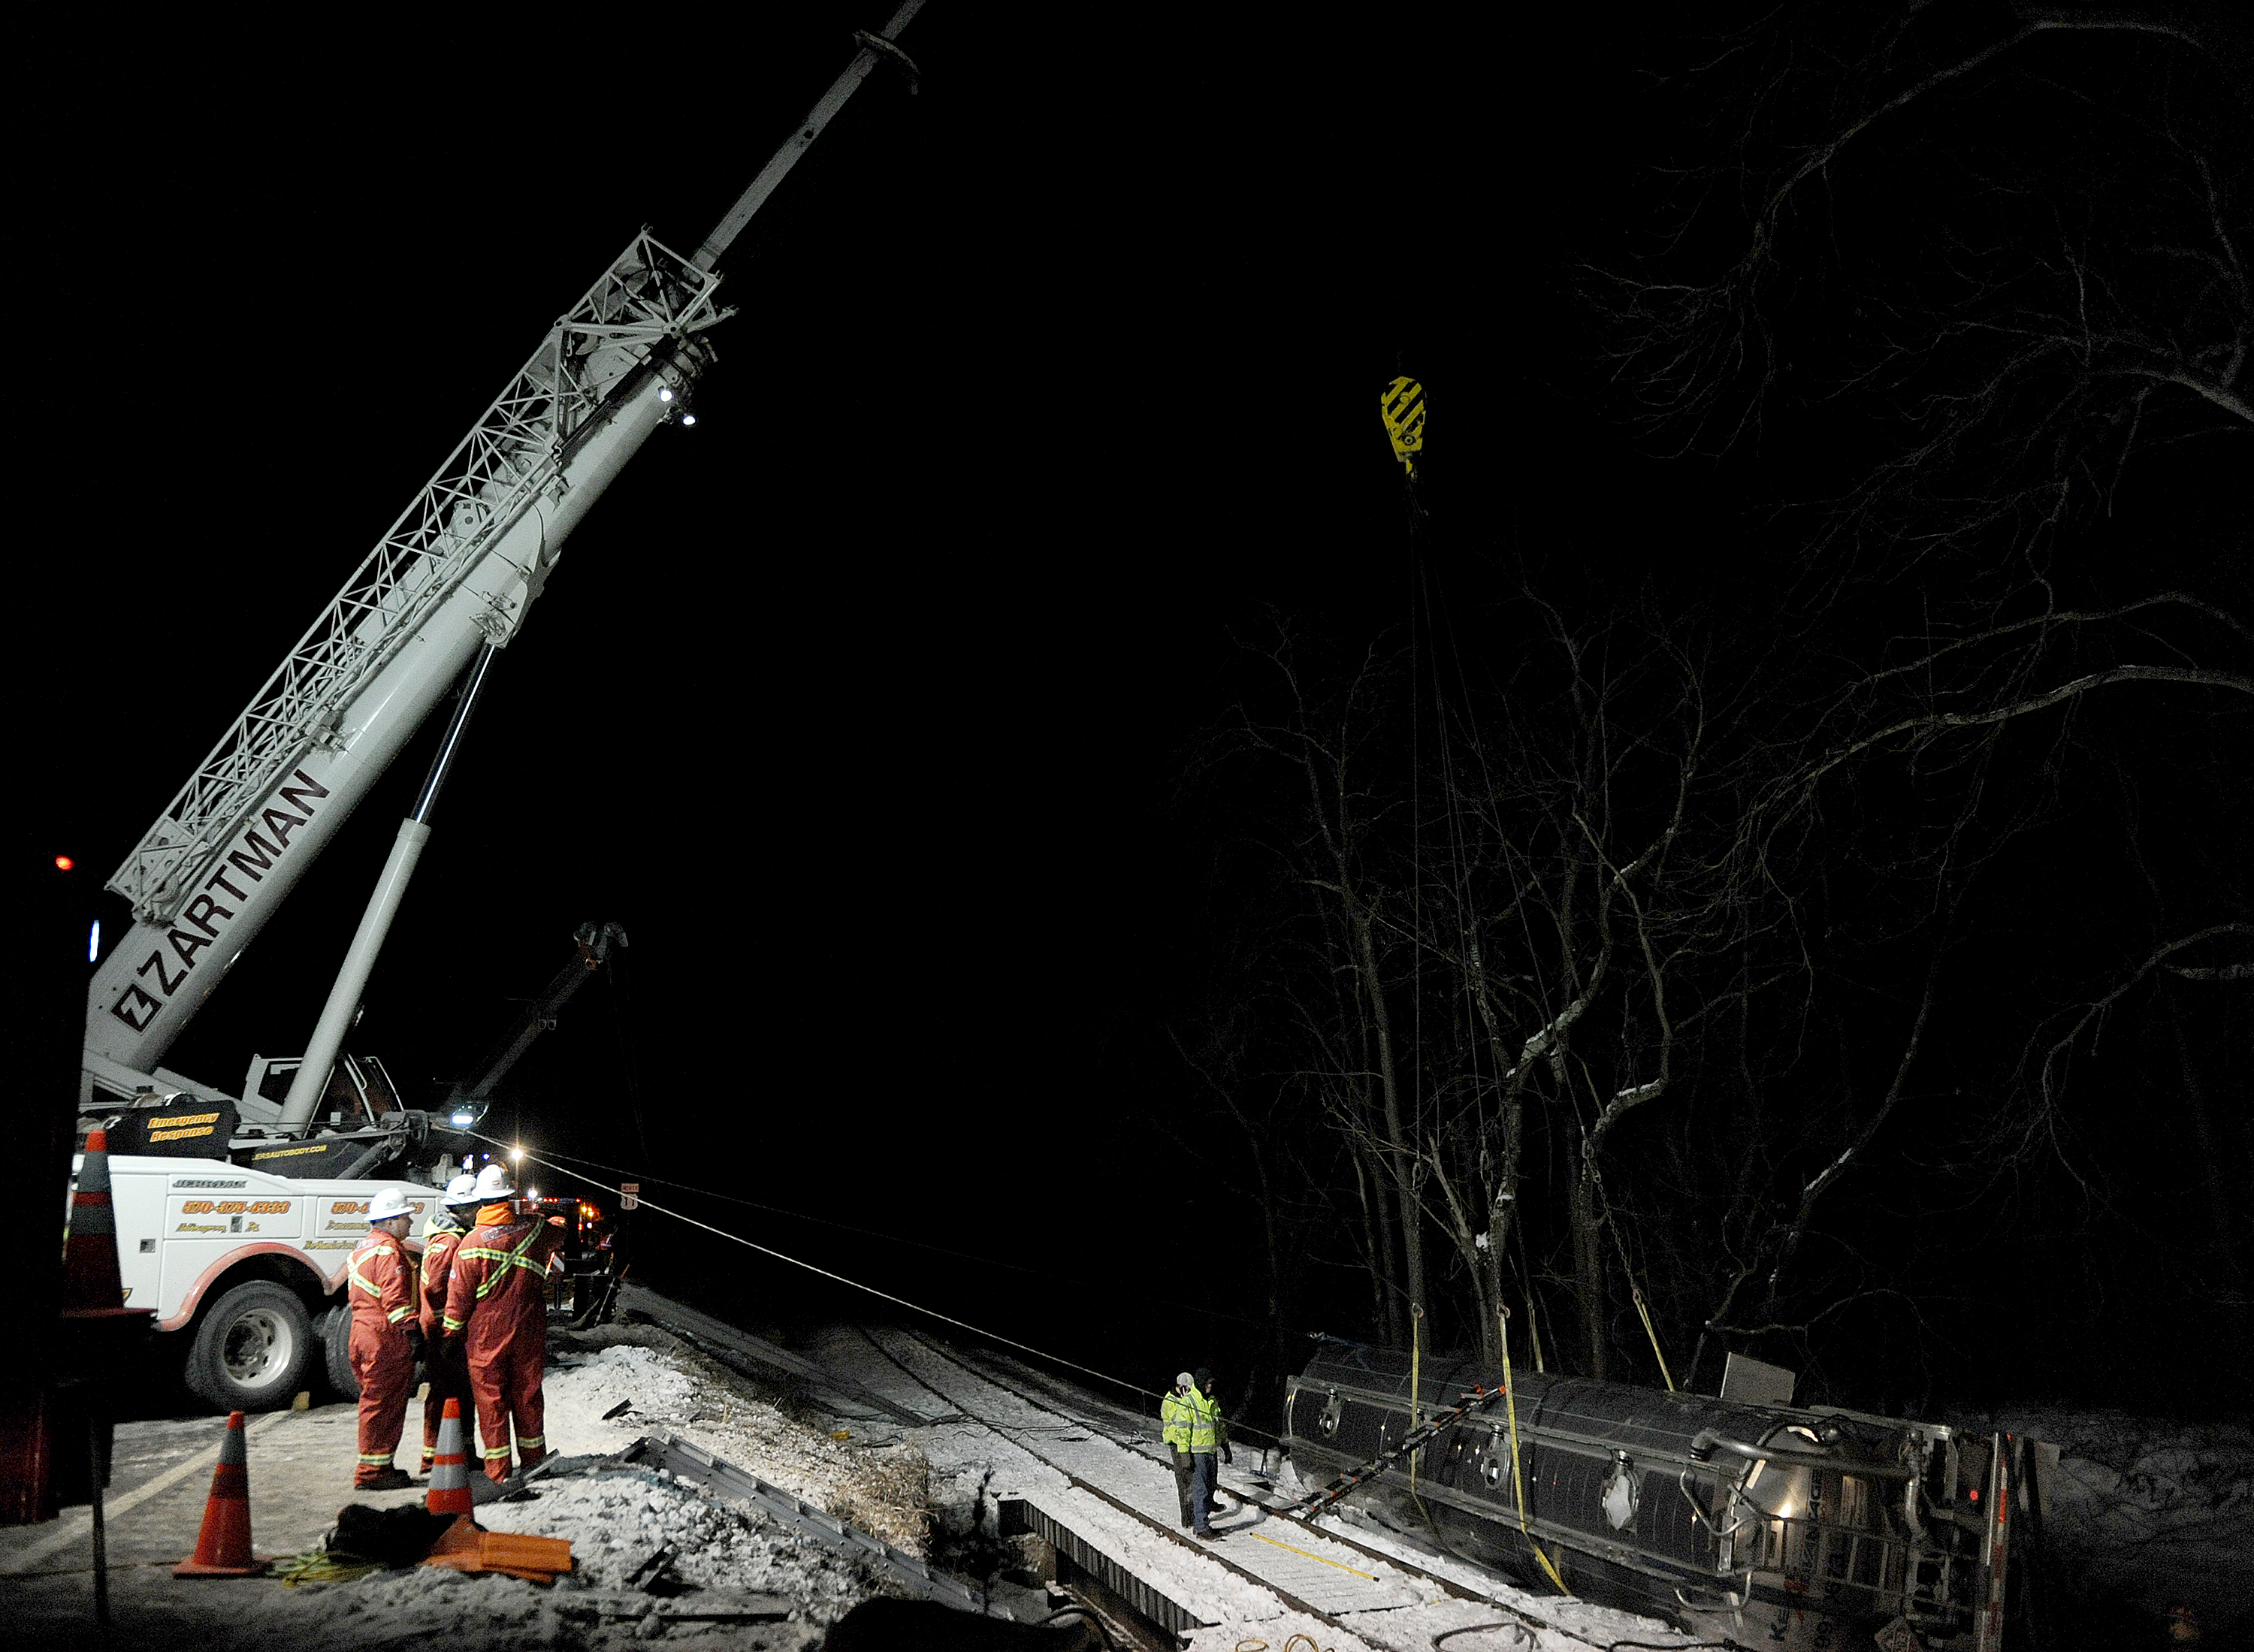 The 225 ton crane is used to stabilize an oil tanker after the tanker rolled off the highway.